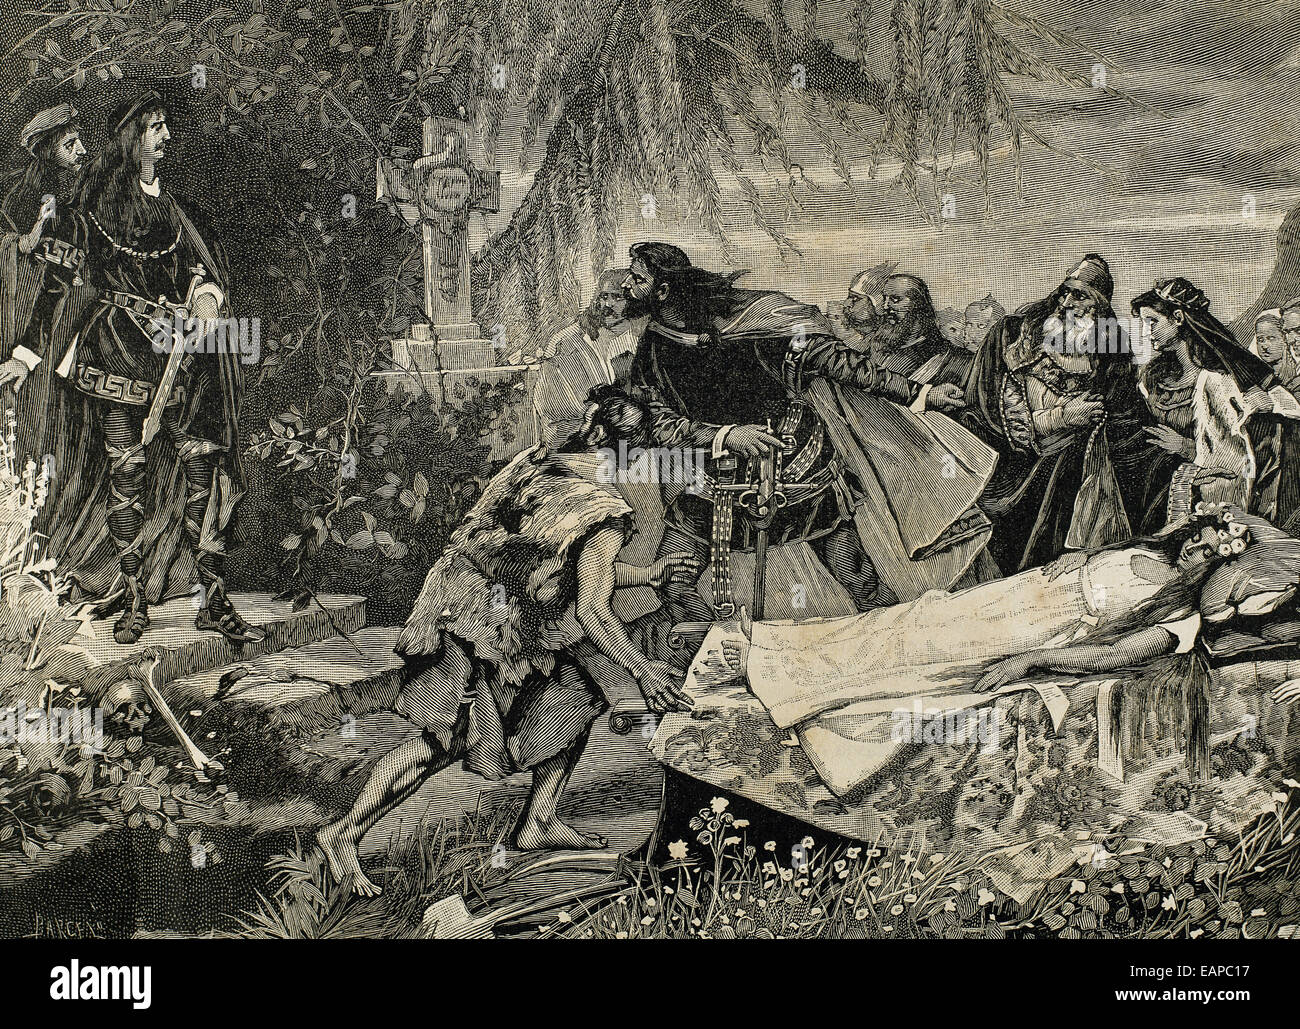 William Shakespeare (1564 – 1616).  The Tragedy of Hamlet. Ophelia's funeral. Engraving, 19th century. Stock Photo